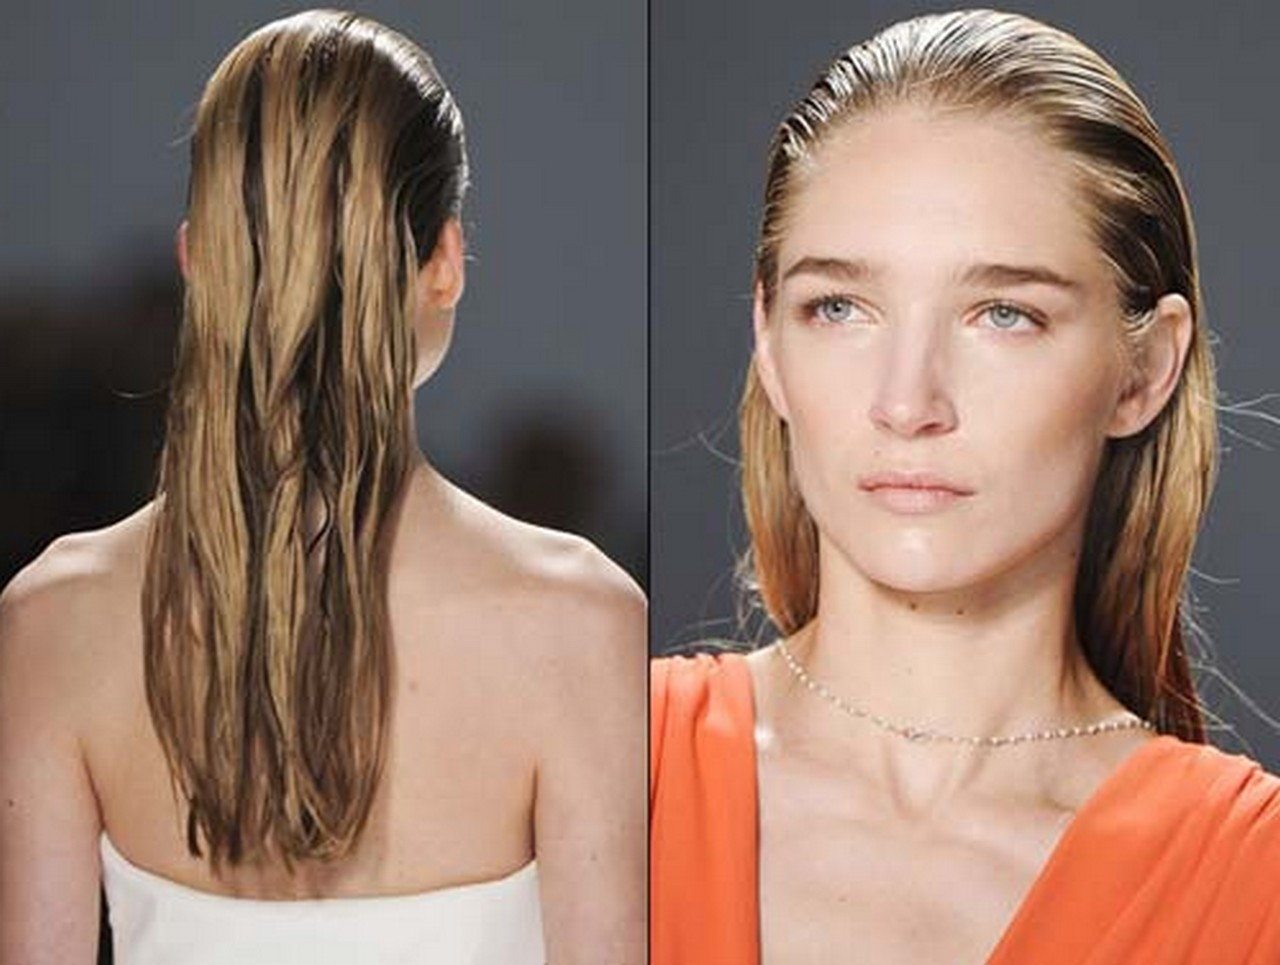 Hairstyles That Look Good When Wet: Wet Look Hairstyle